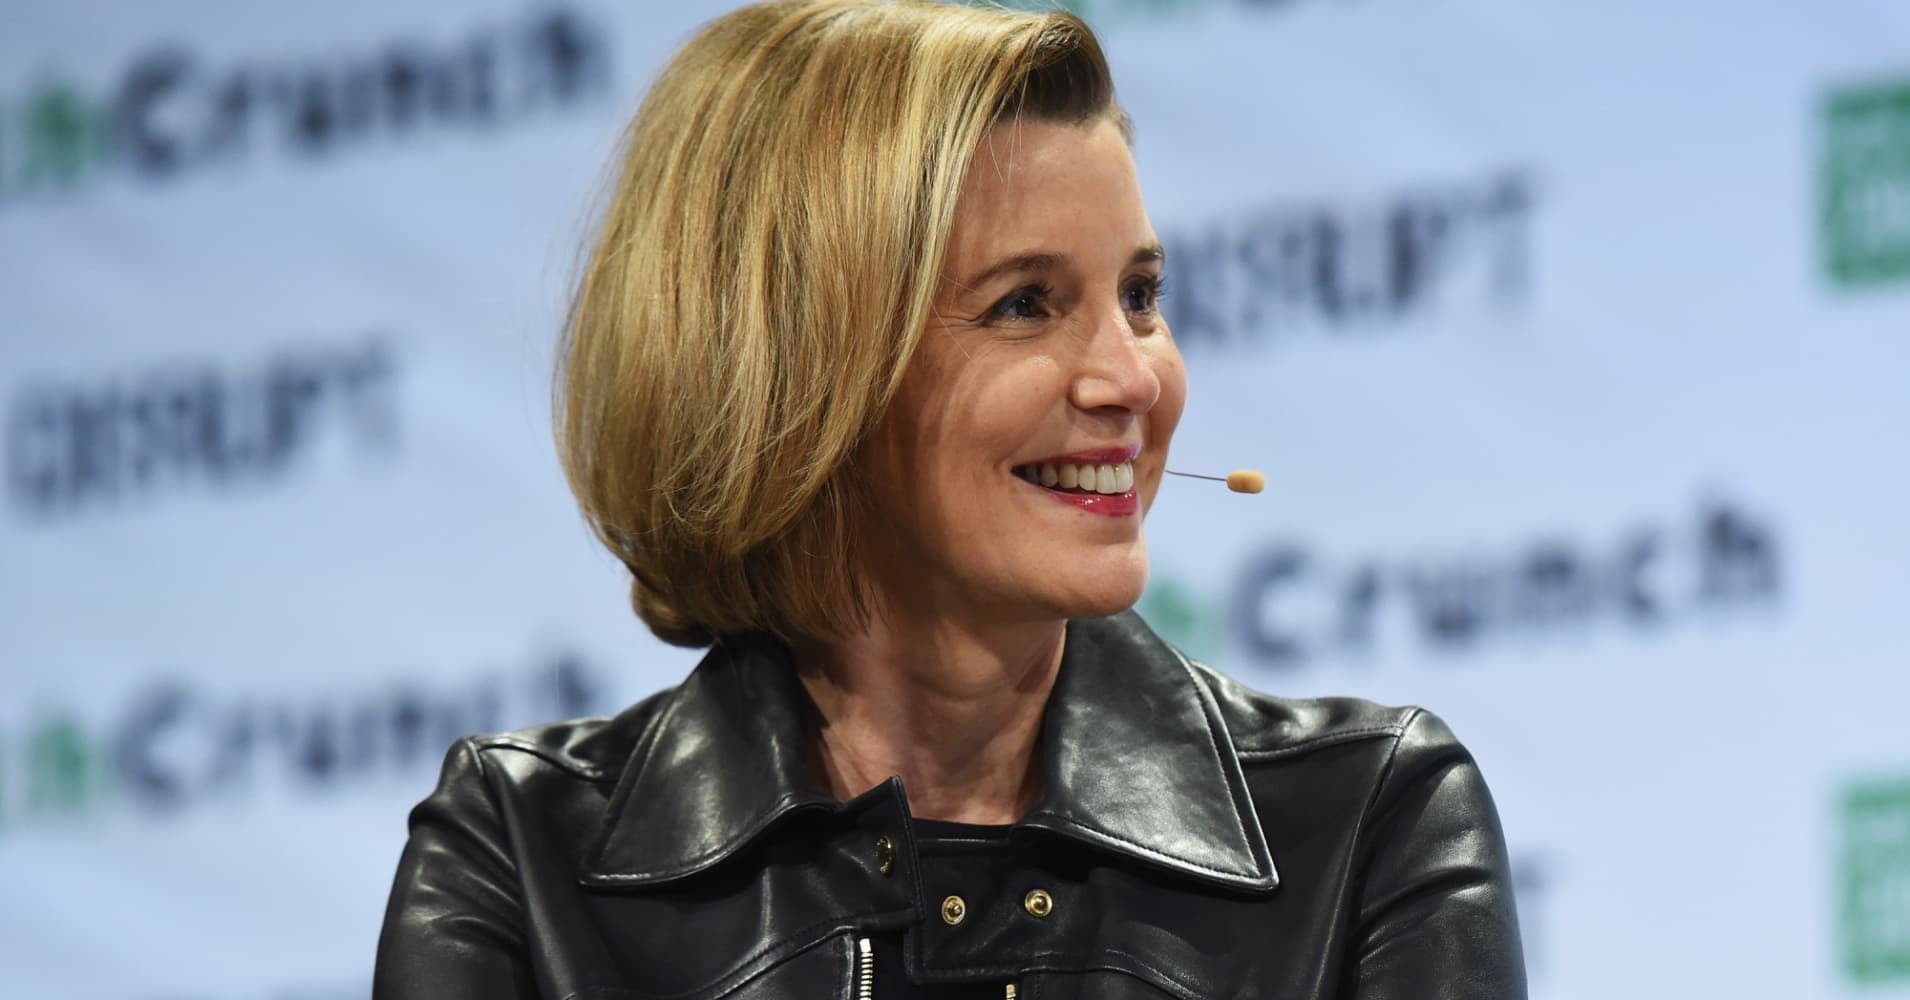 Sallie Krawcheck Co-founder and CEO of Ellevest.